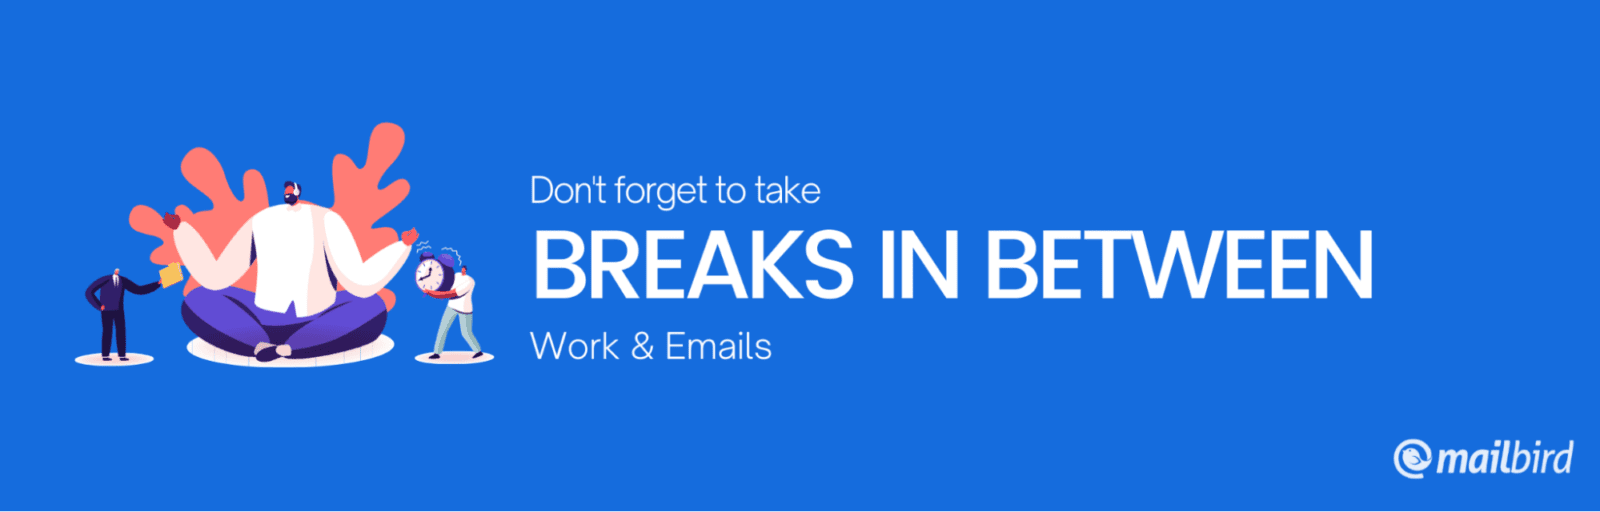 don't forget to take breaks